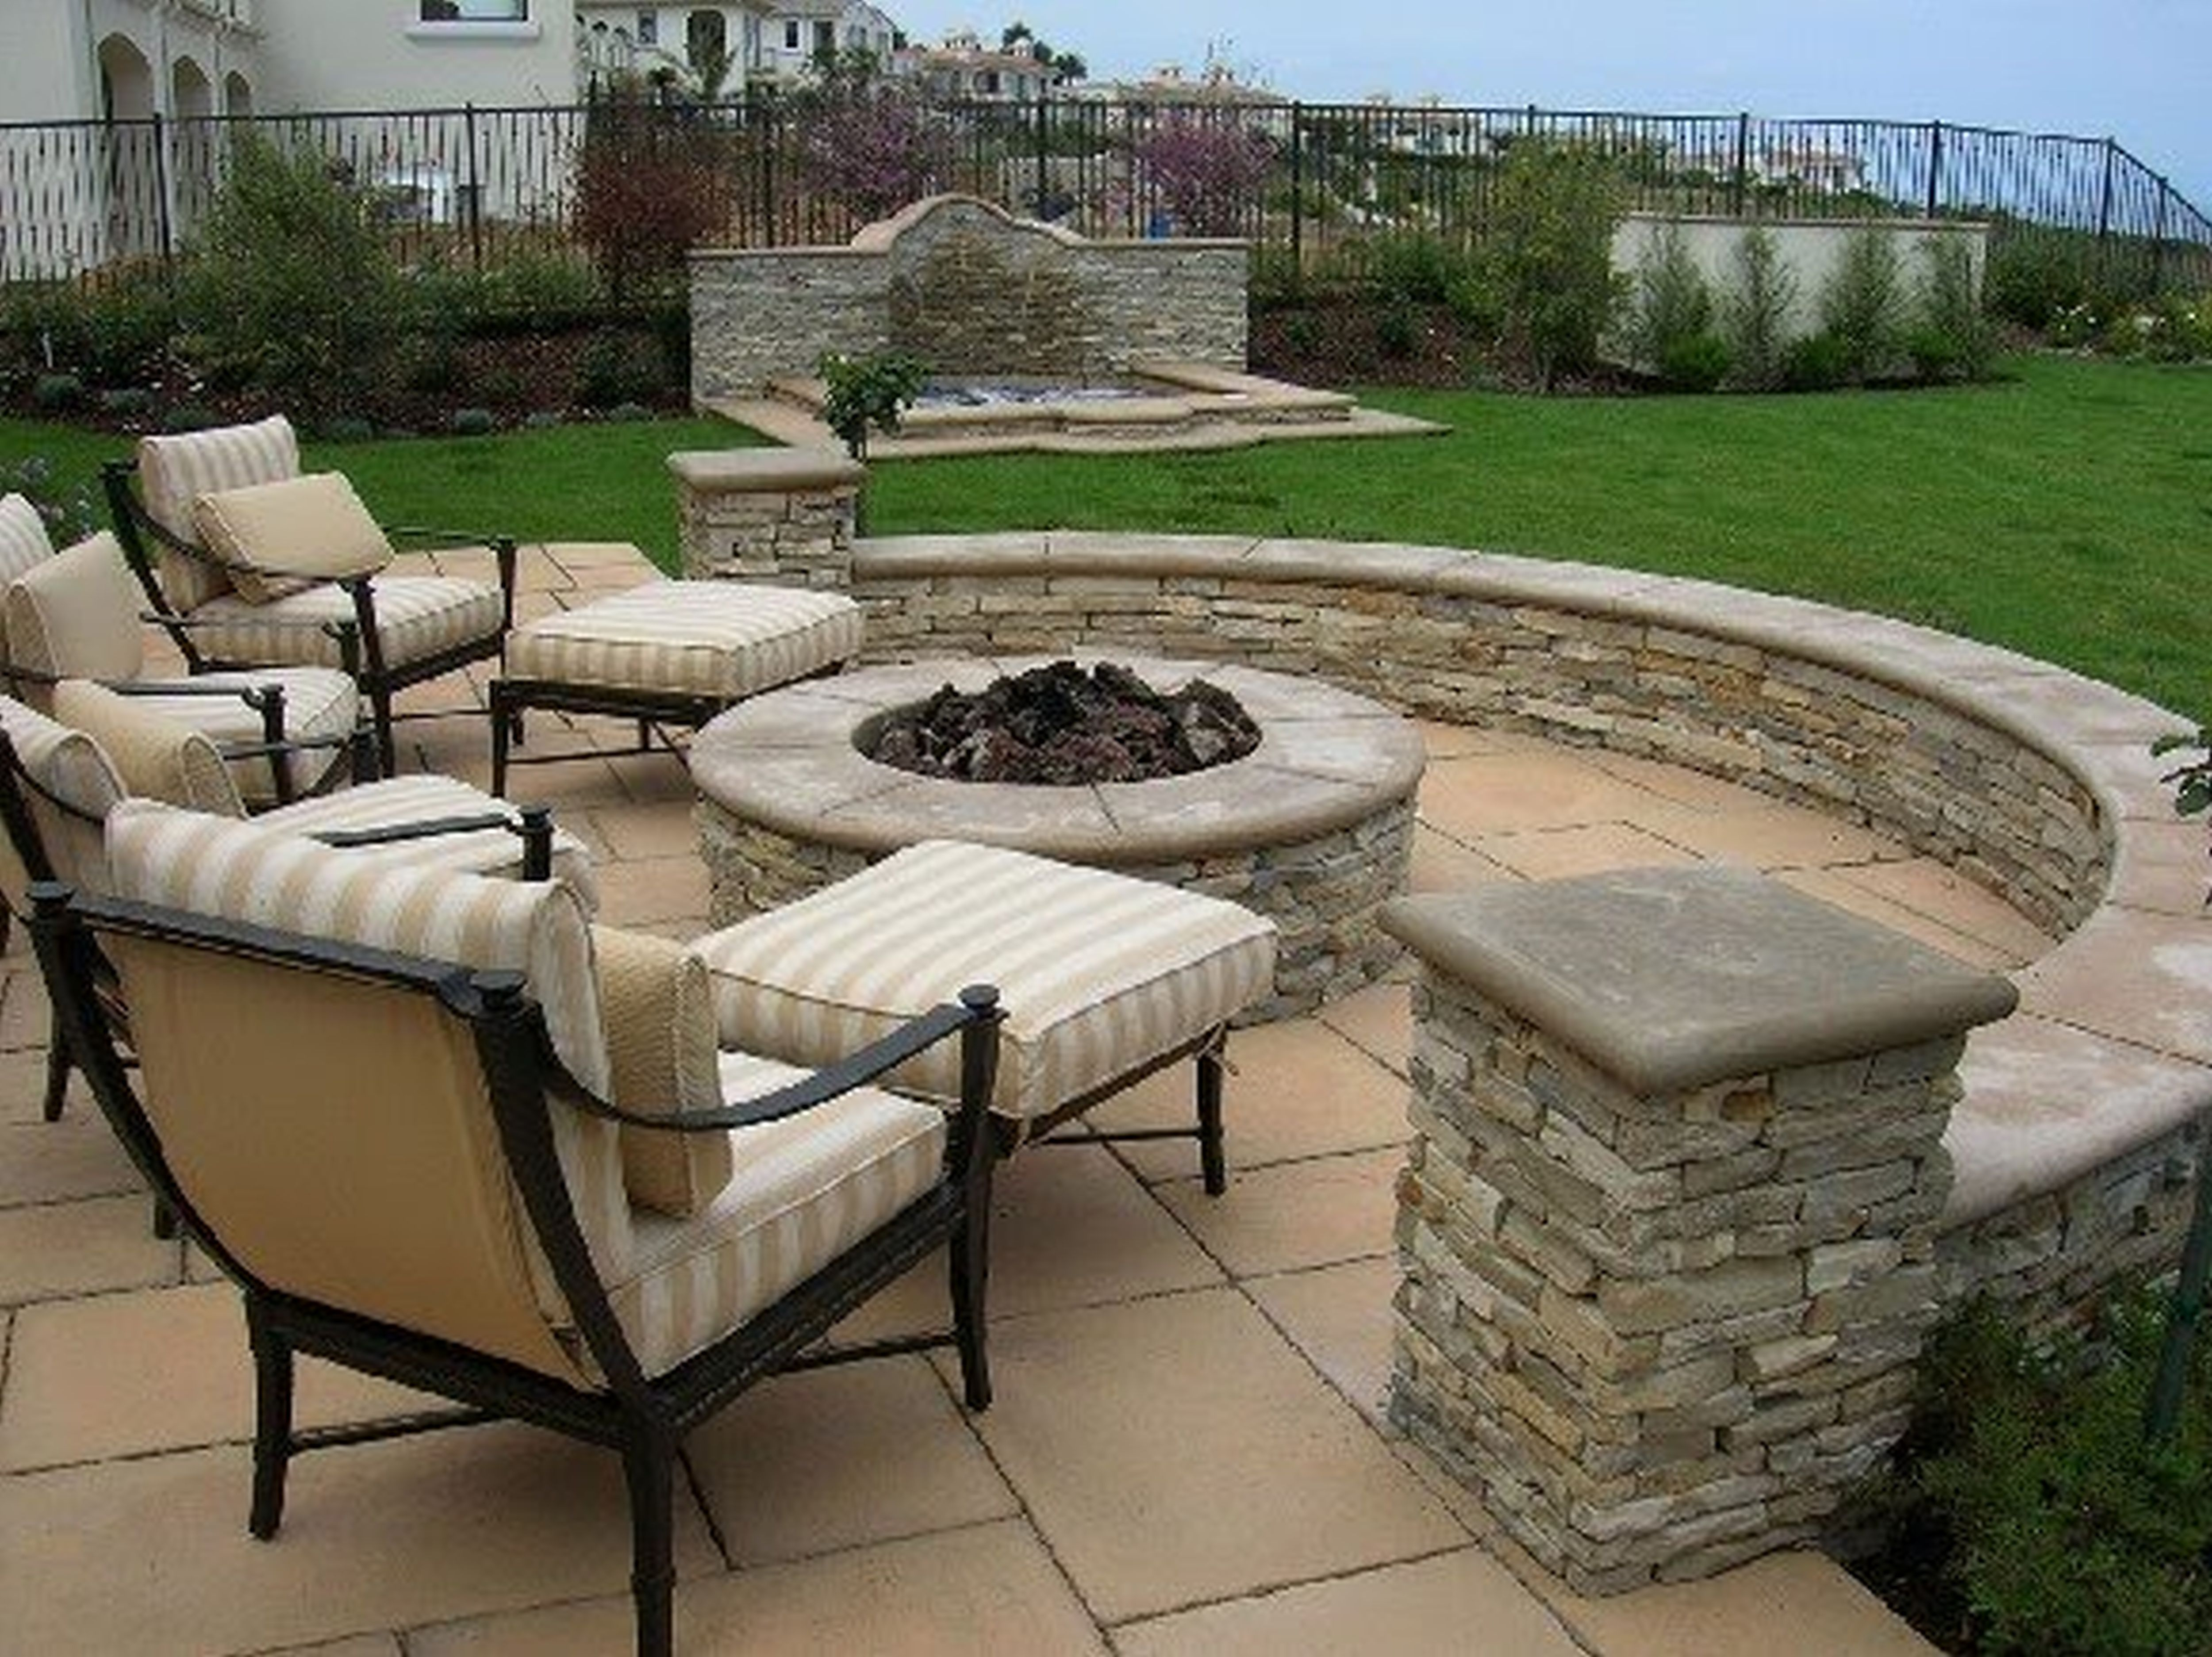 Fireplace Outdoor Adorable Rustic Green Covered Black Iron ... on Small Backyard Stone Patio Ideas id=80640